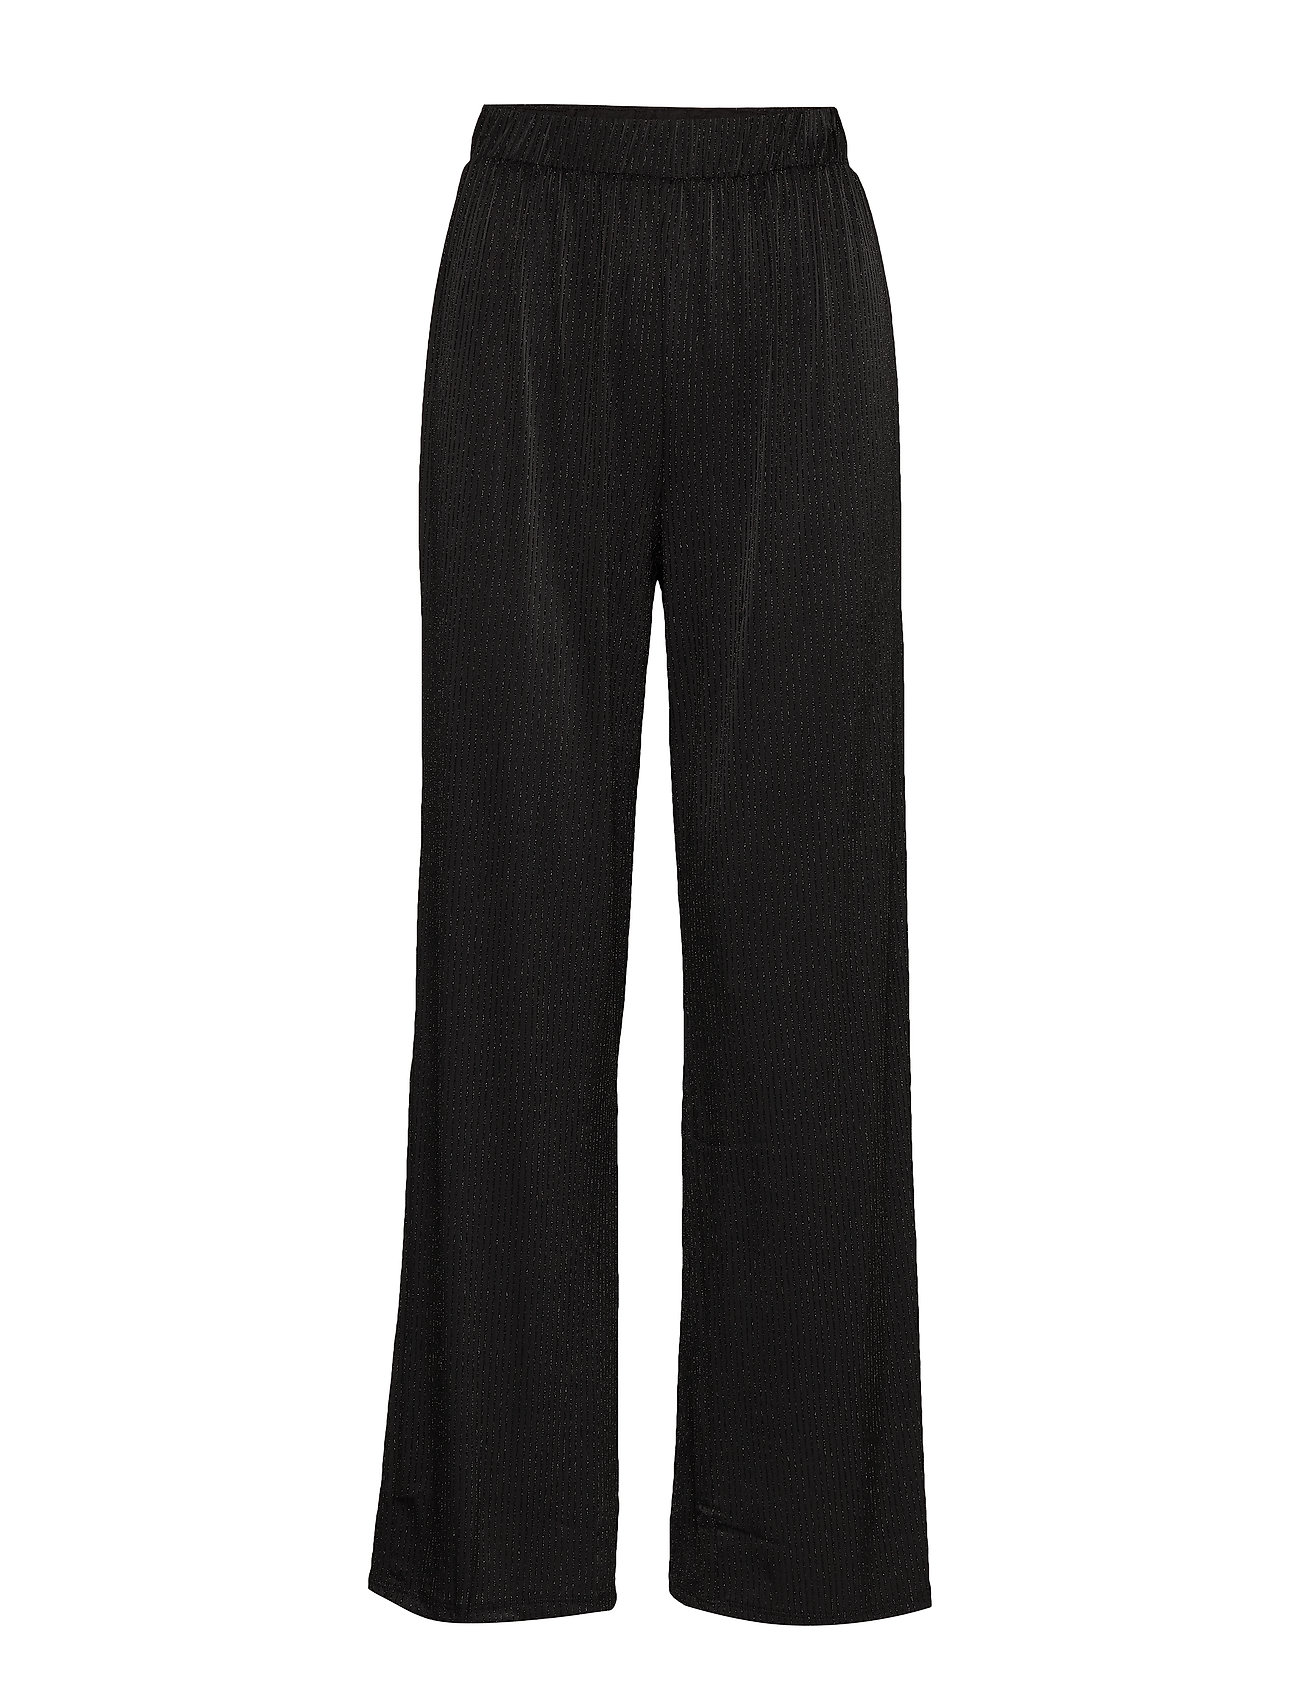 ONLY ONLCOSMO GLITTER PANT JRS - BLACK